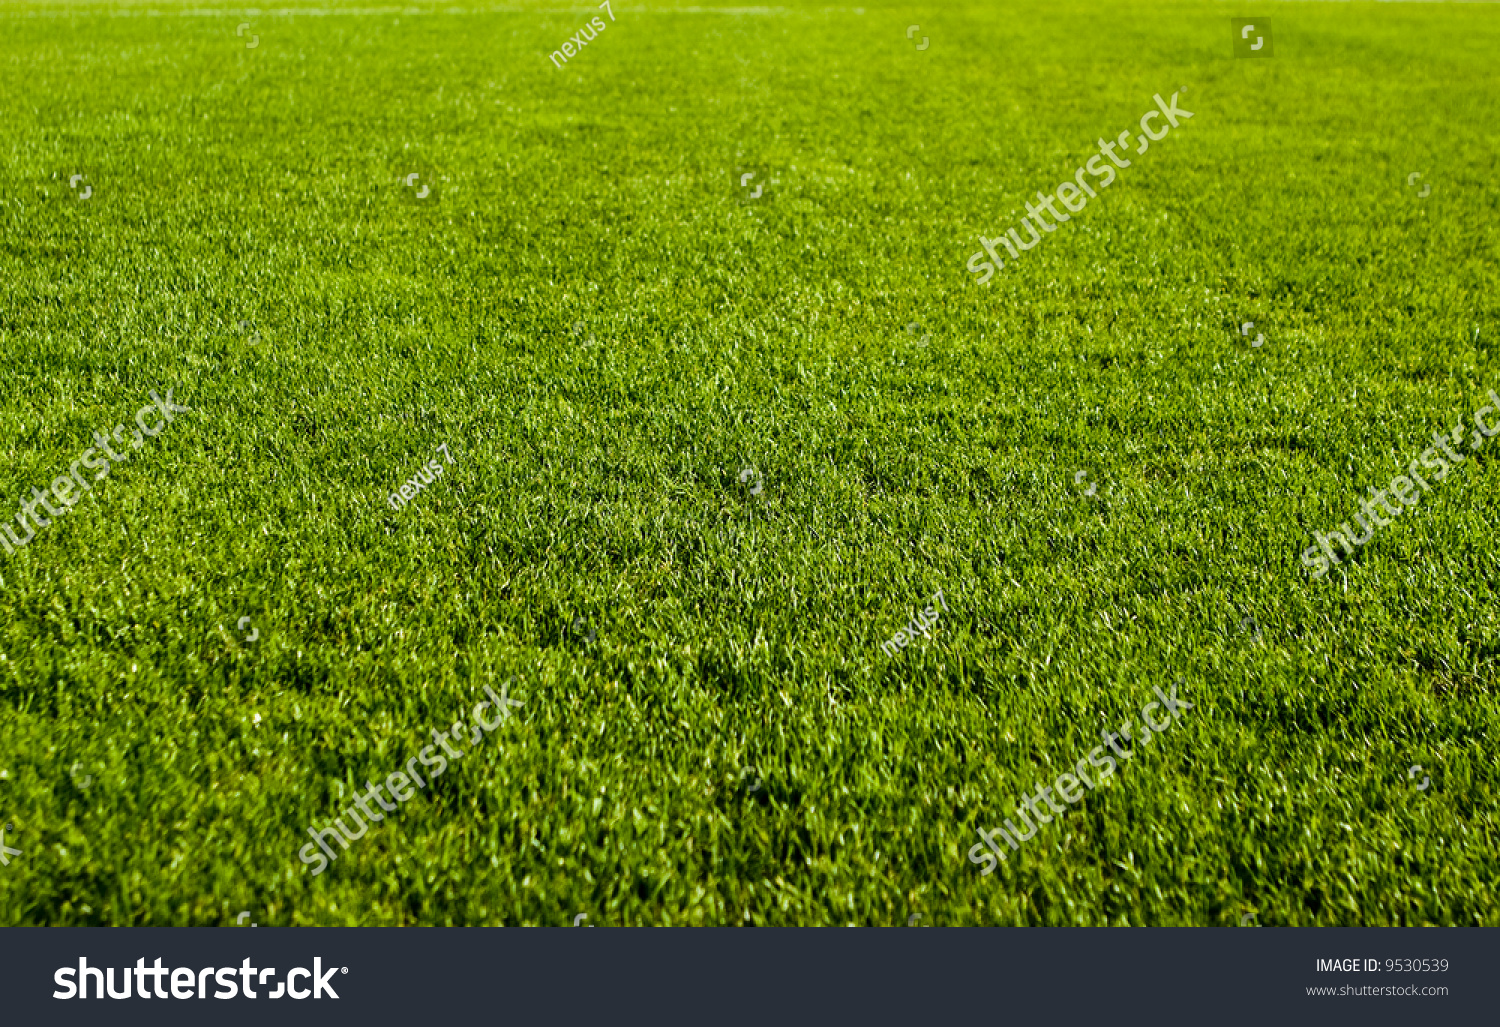 Nice Green Grass Texture Form A Soccer Field Stock Photo